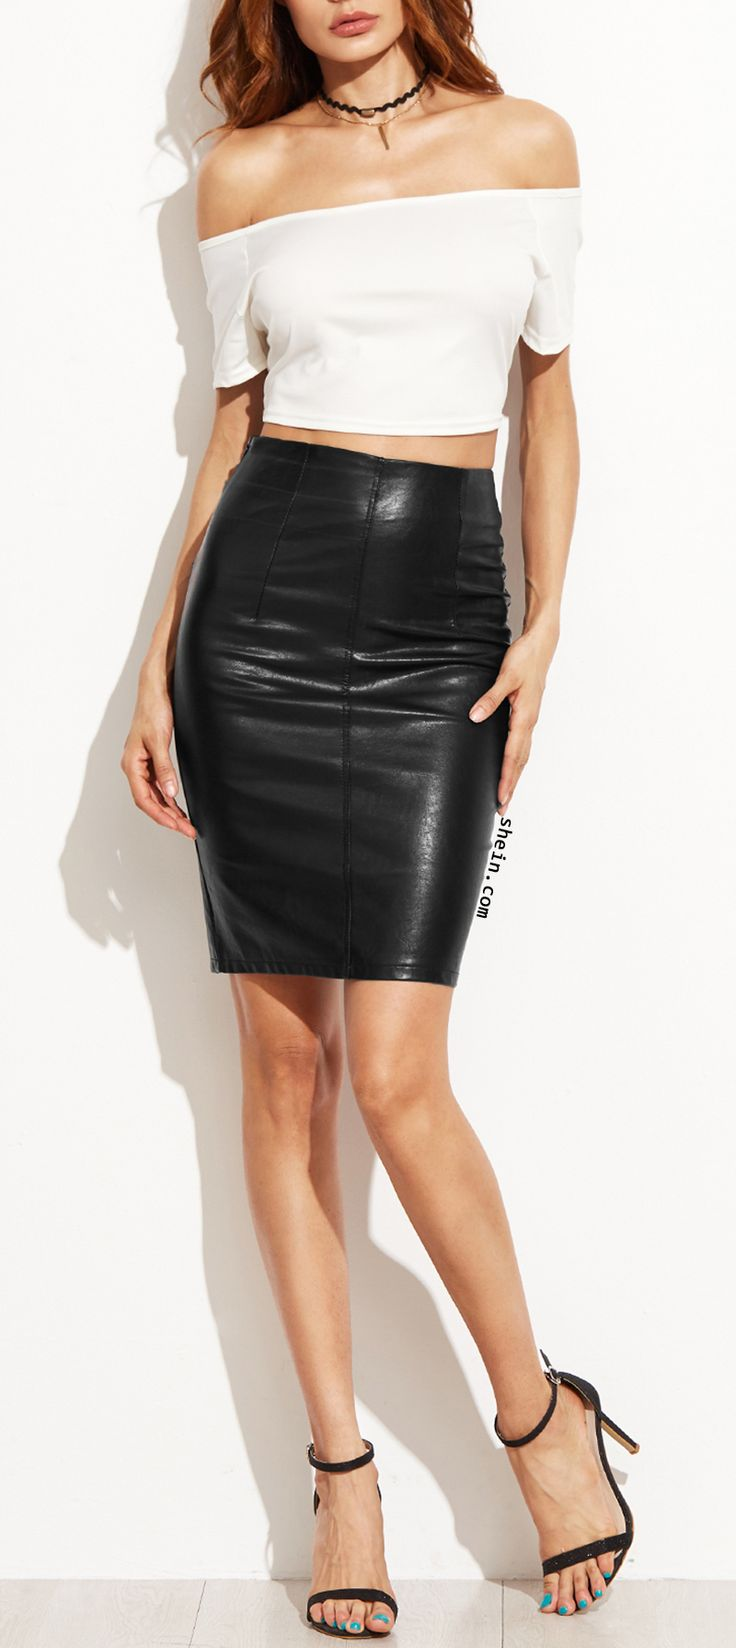 561 best images about Skirts on Pinterest   Long pencil skirt ...